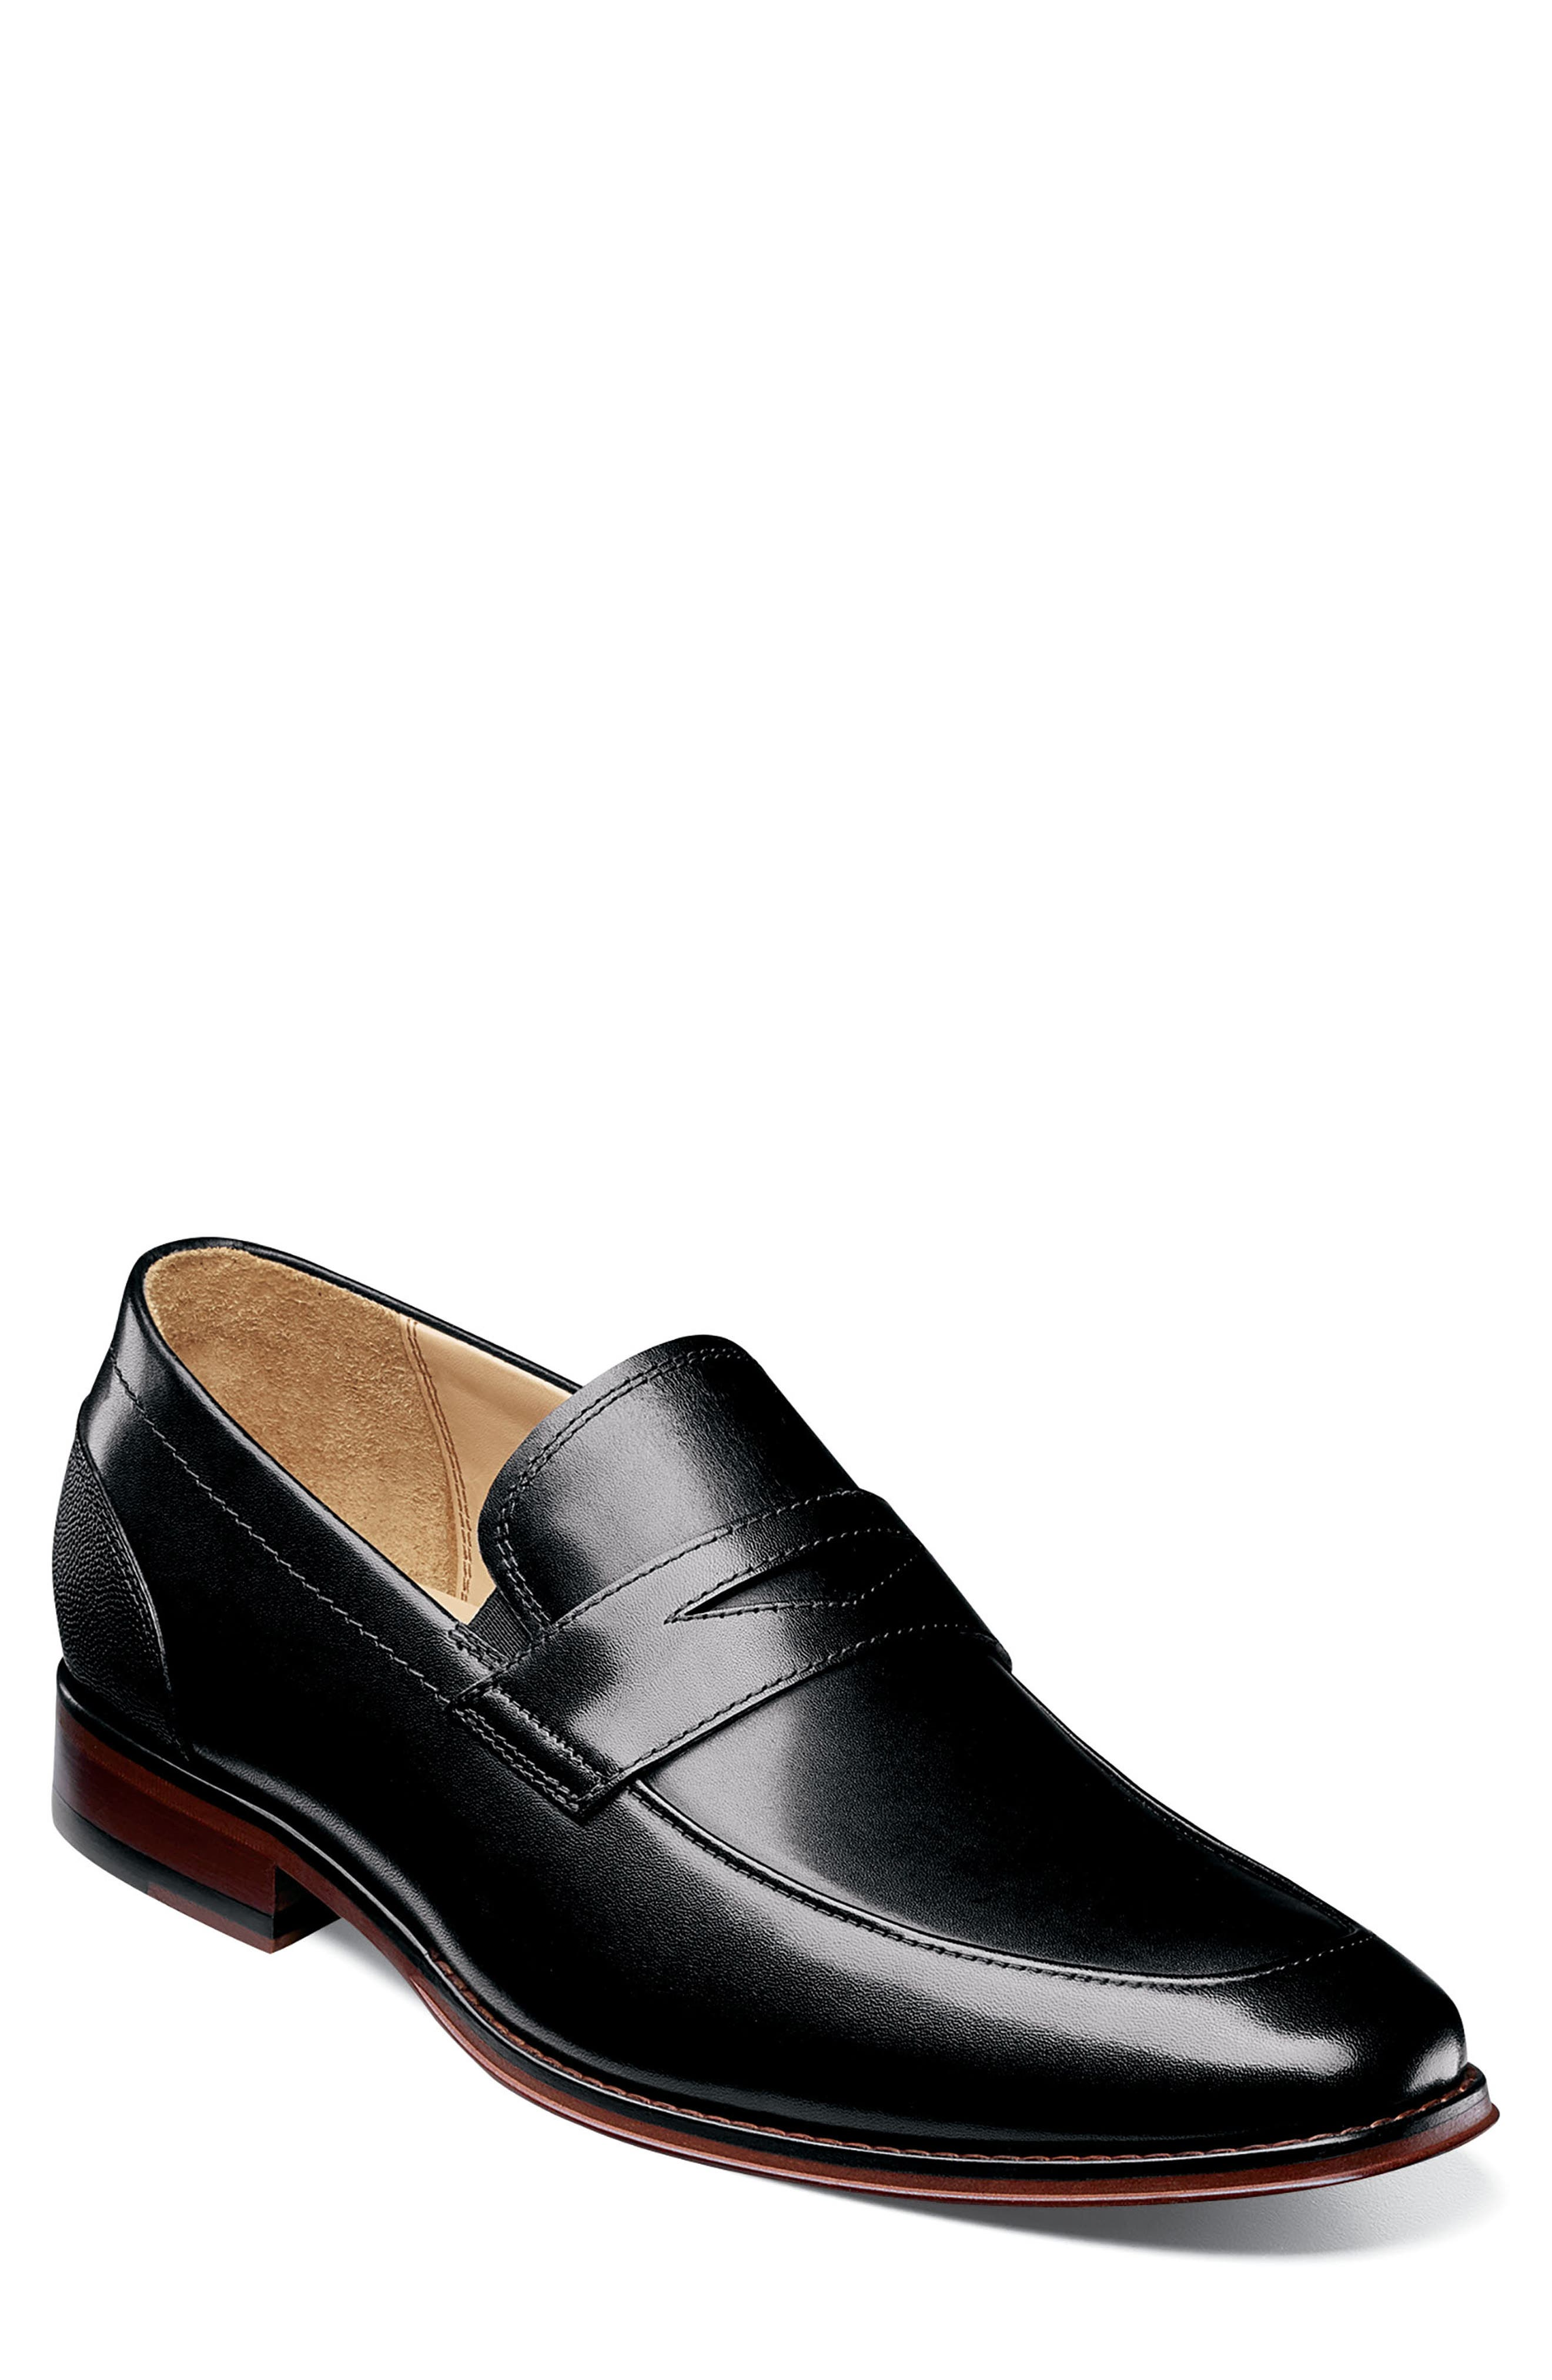 Imperial Palermo Penny Loafer